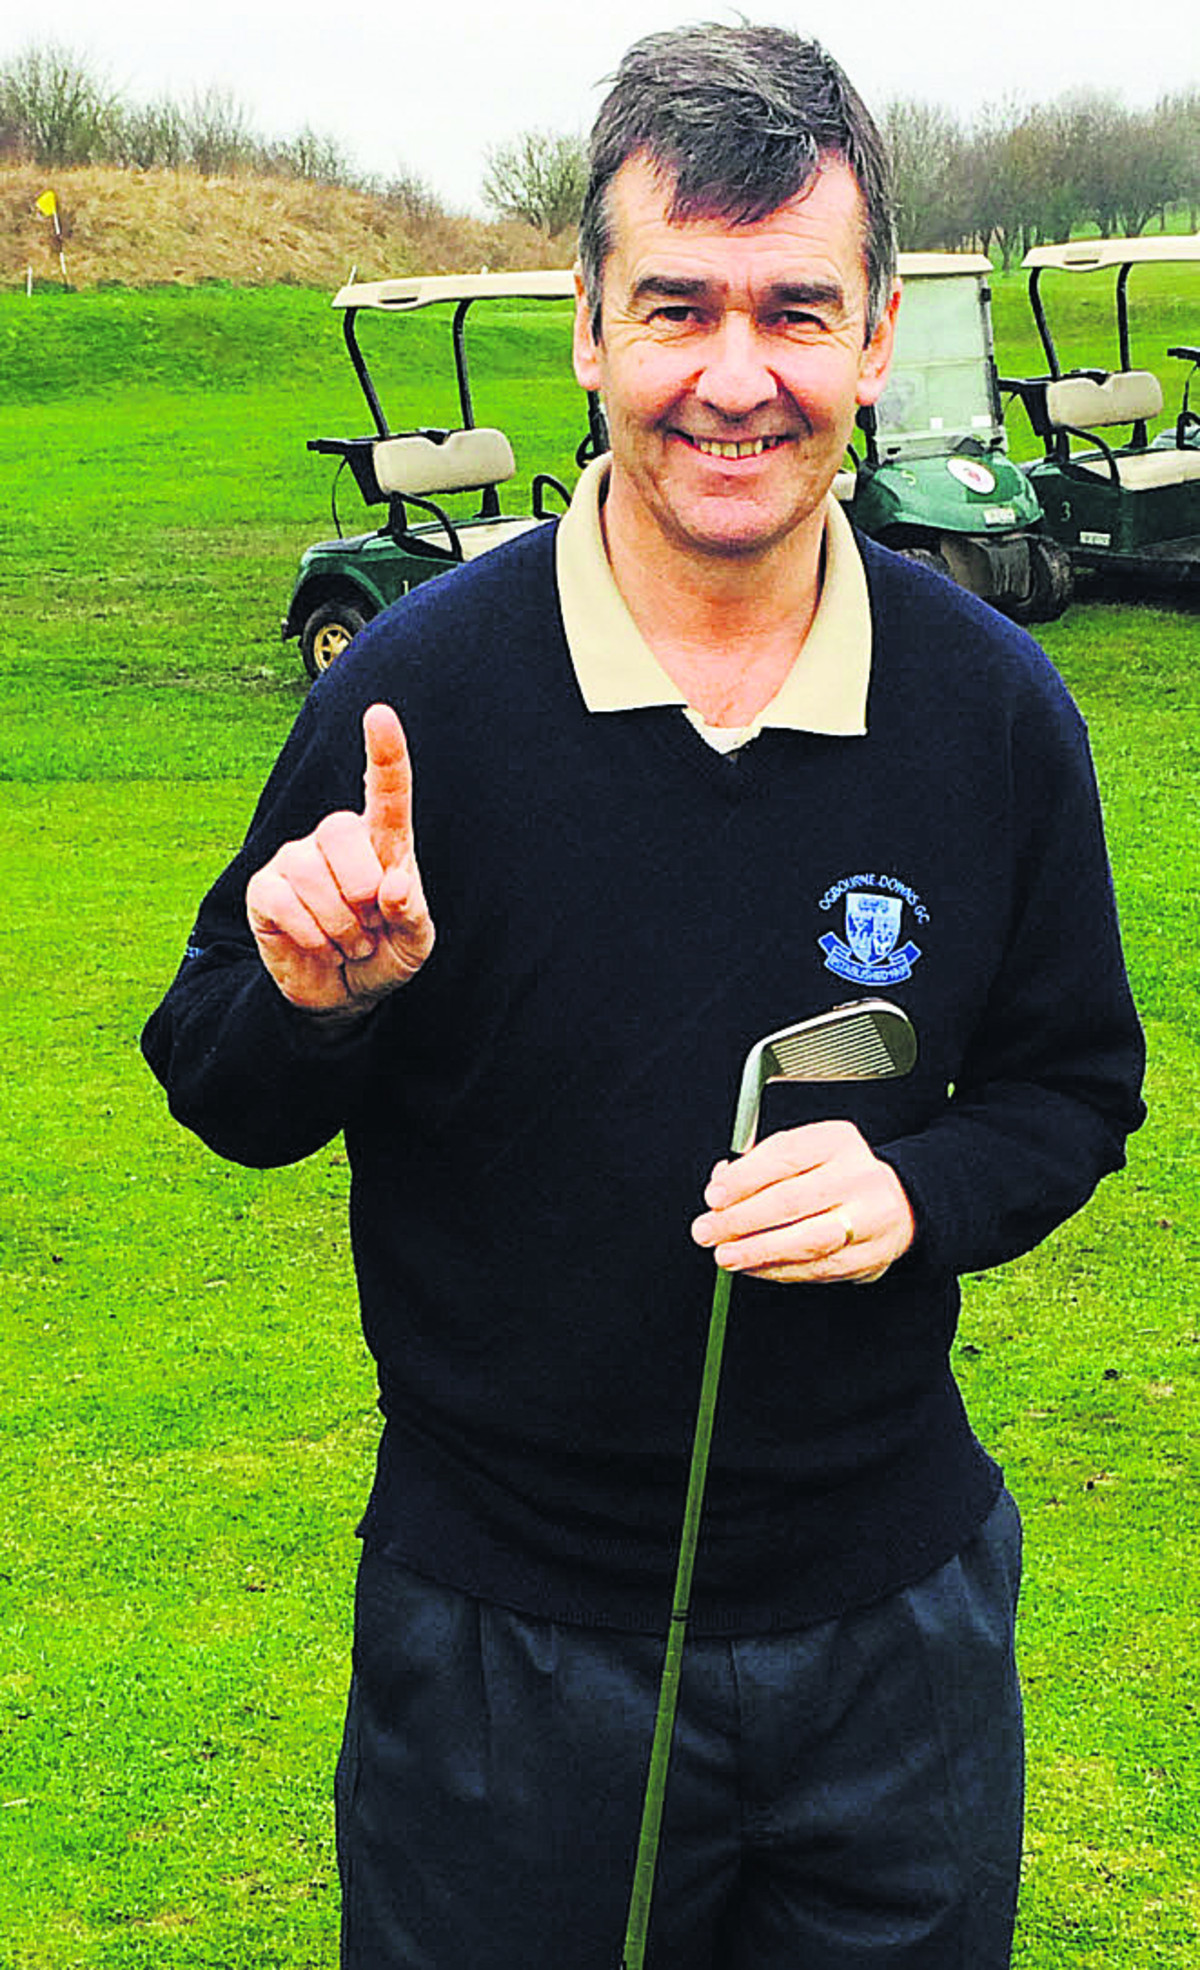 Dave Myler celebrates his ace at the 17th hole at the Ogbourne Downs club, near Marlborough